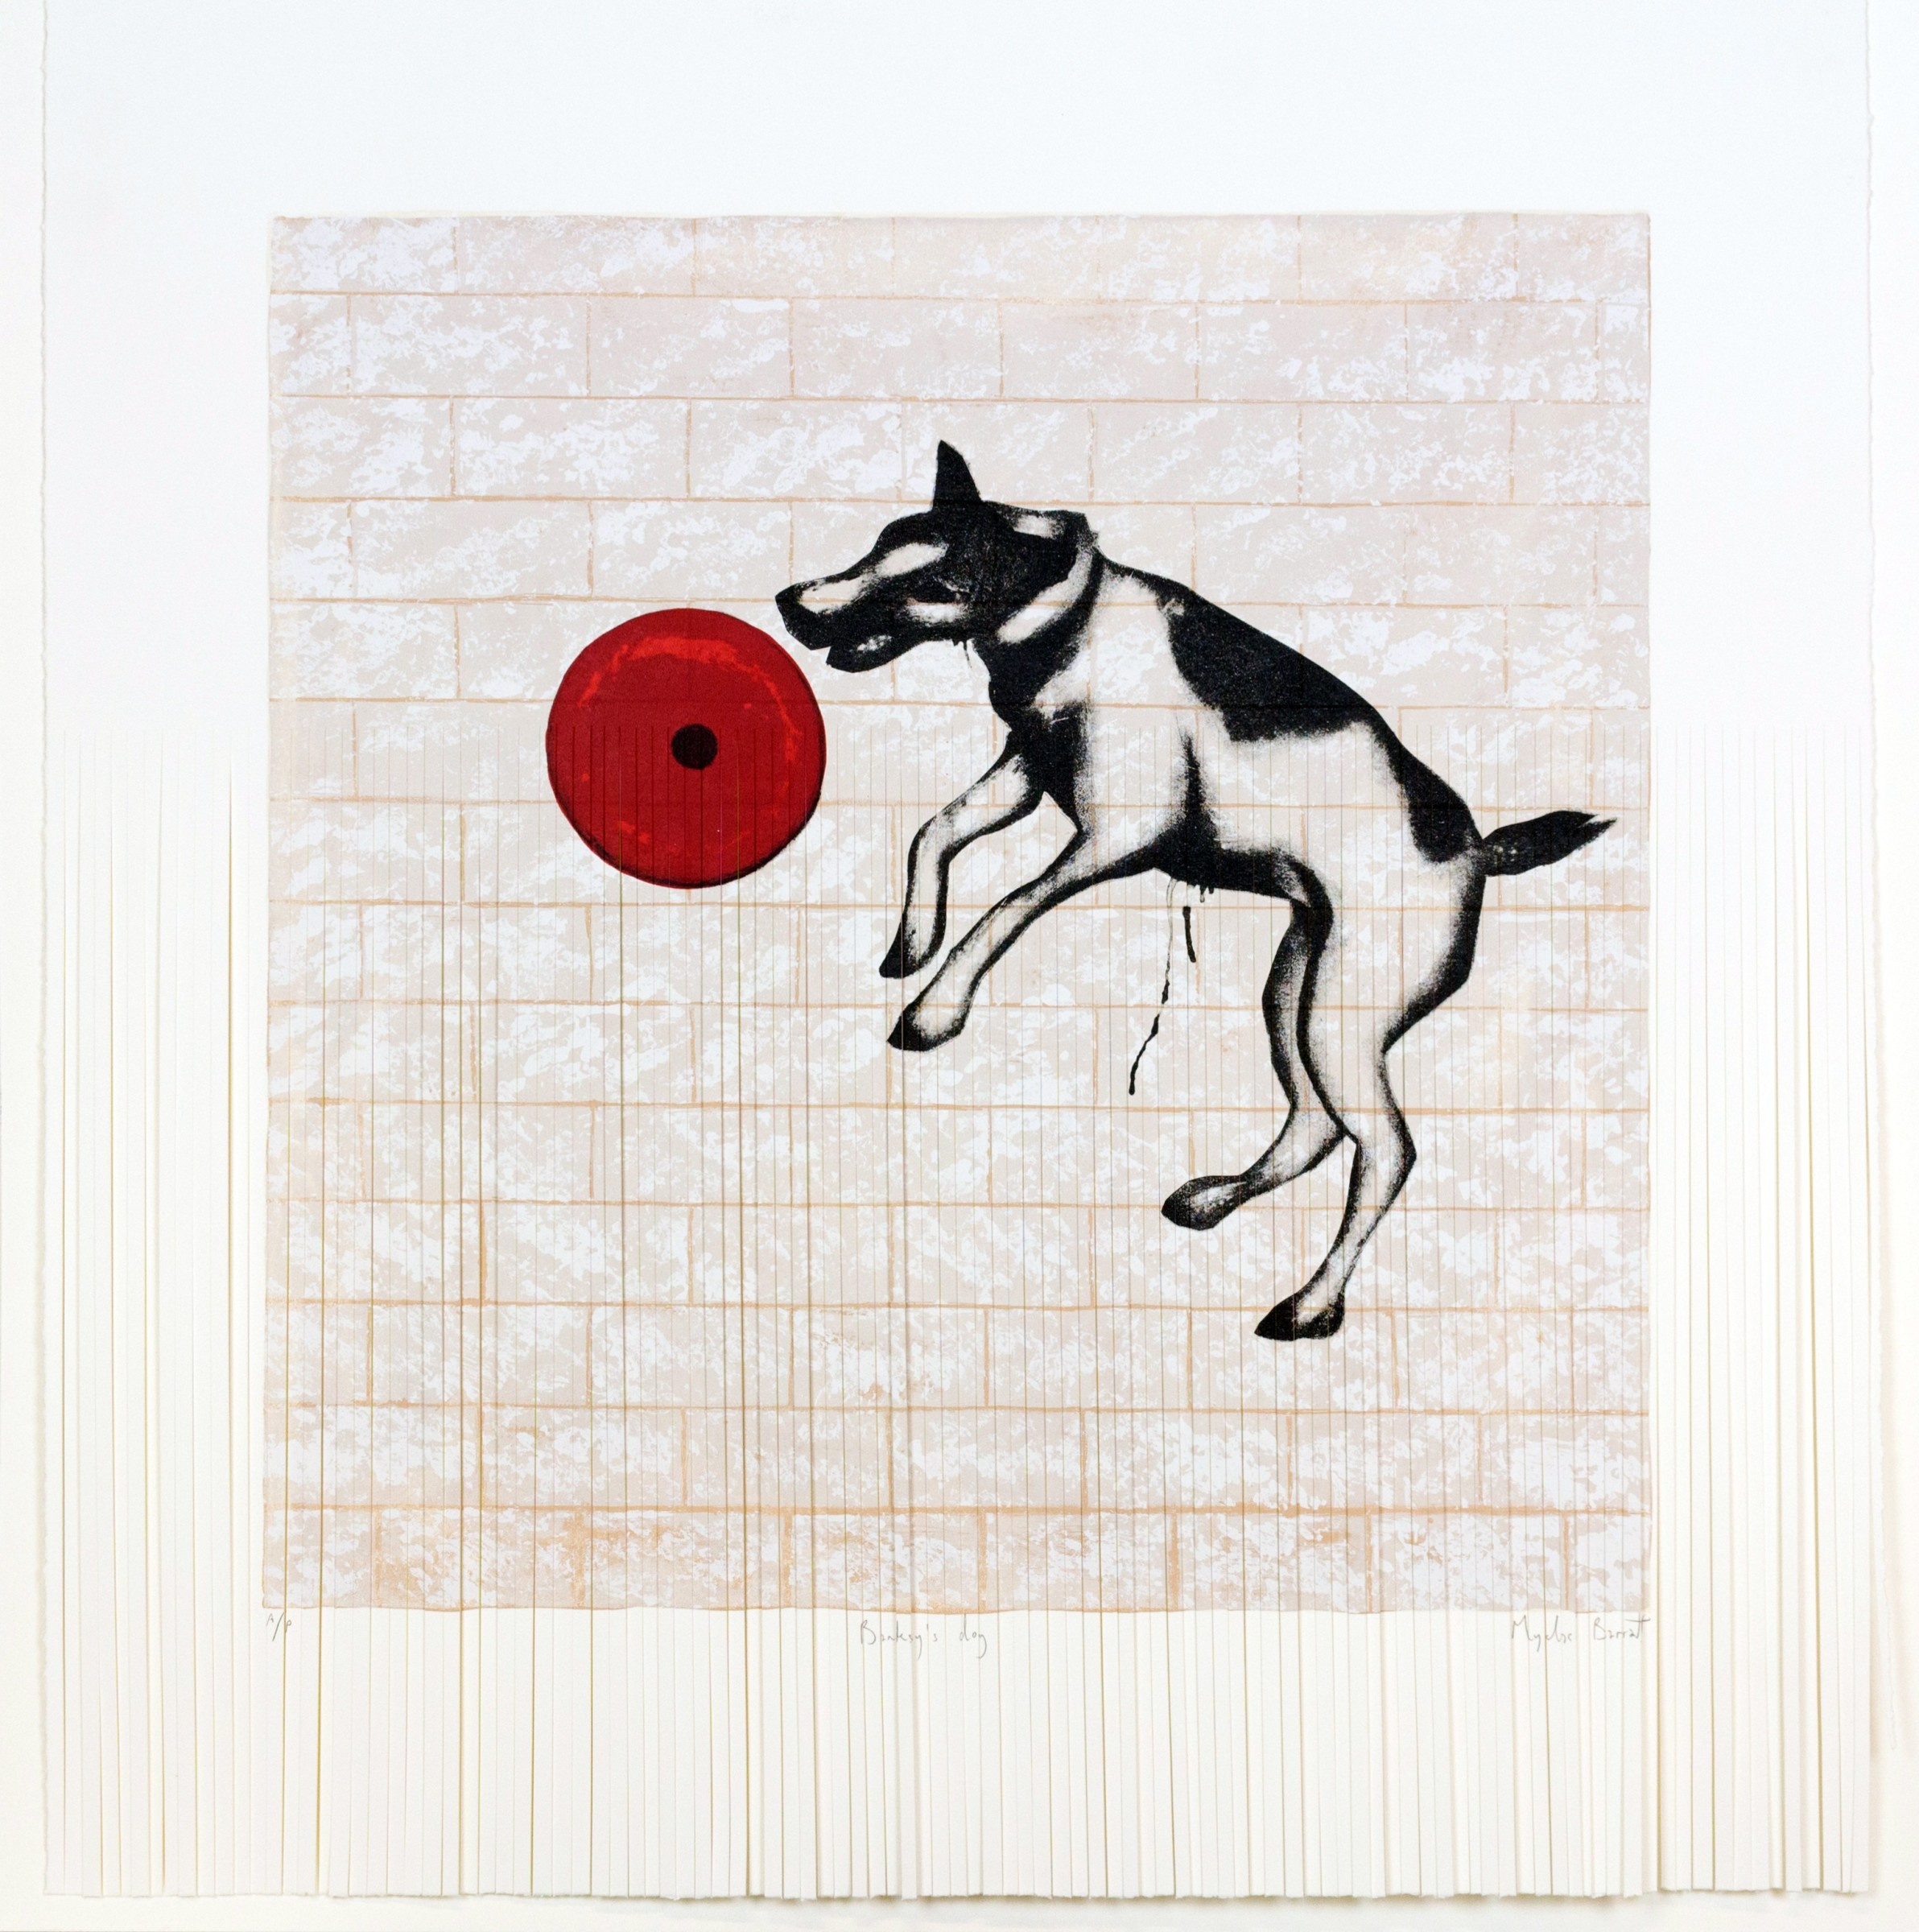 """<span class=""""link fancybox-details-link""""><a href=""""/exhibitions/17/works/image_standalone612/"""">View Detail Page</a></span><p><strong>Mychael Barratt</strong></p><p>Banksy's Dog (Shredded)</p><p>silkscreen & scapel, ed of 50</p><p>75 x 73cm</p><p>£600 framed</p><p>£500 unframed</p>"""